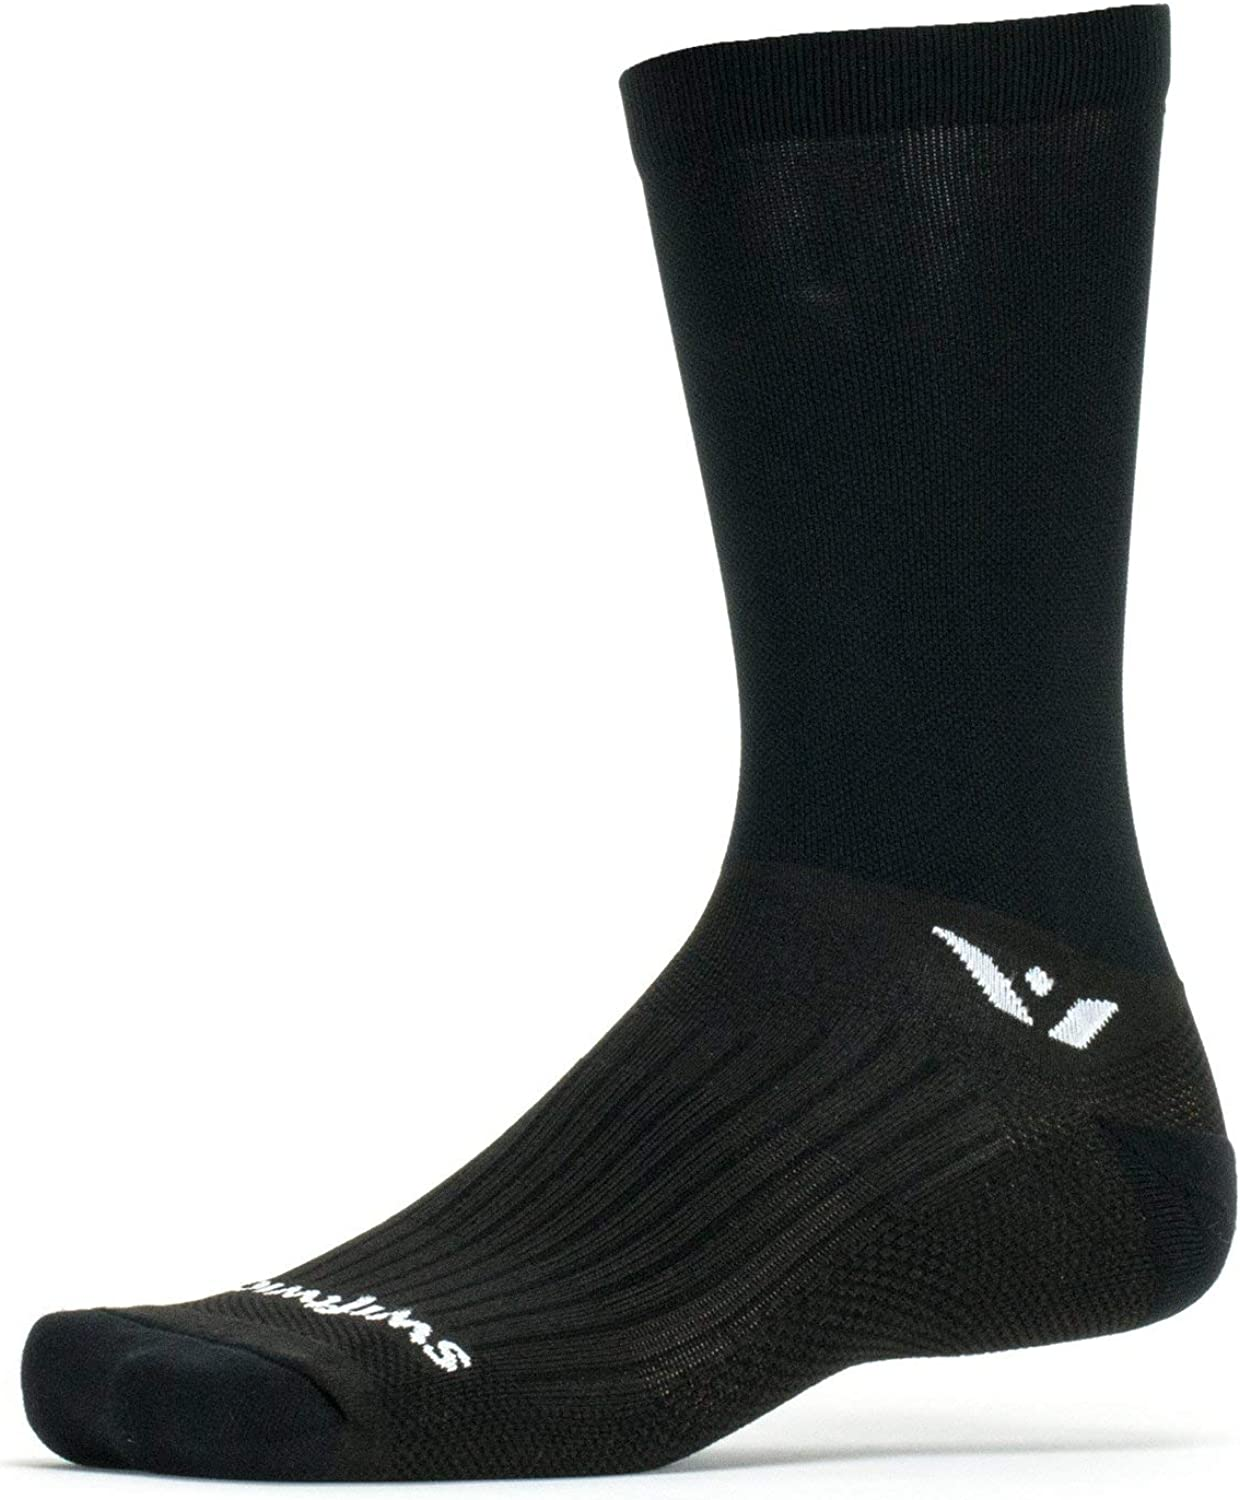 Swiftwick- PERFORMANCE SEVEN Cycling Socks, Wicking, Lightweight Crew